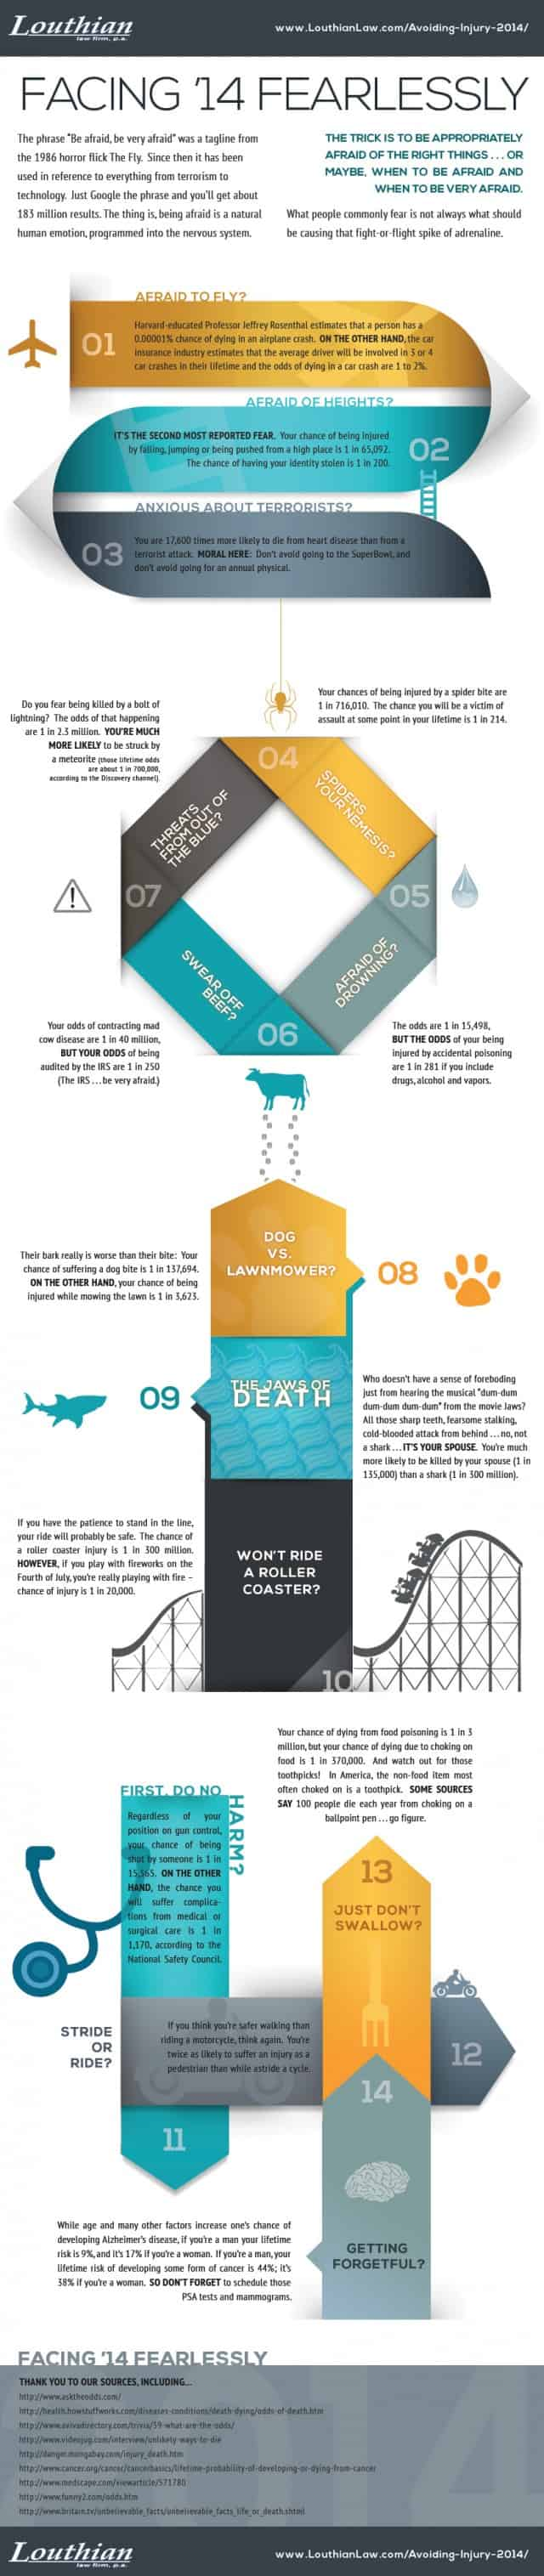 Facing 2014 Fearlessly [infographic]